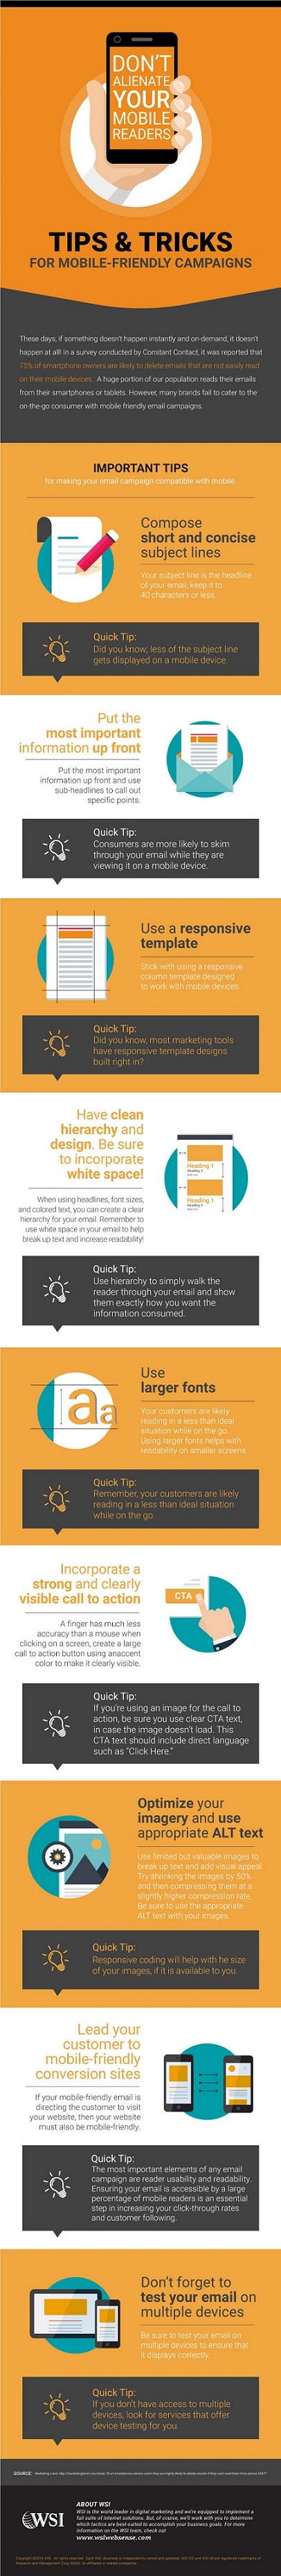 email-marketing-infographic-wsi-websense